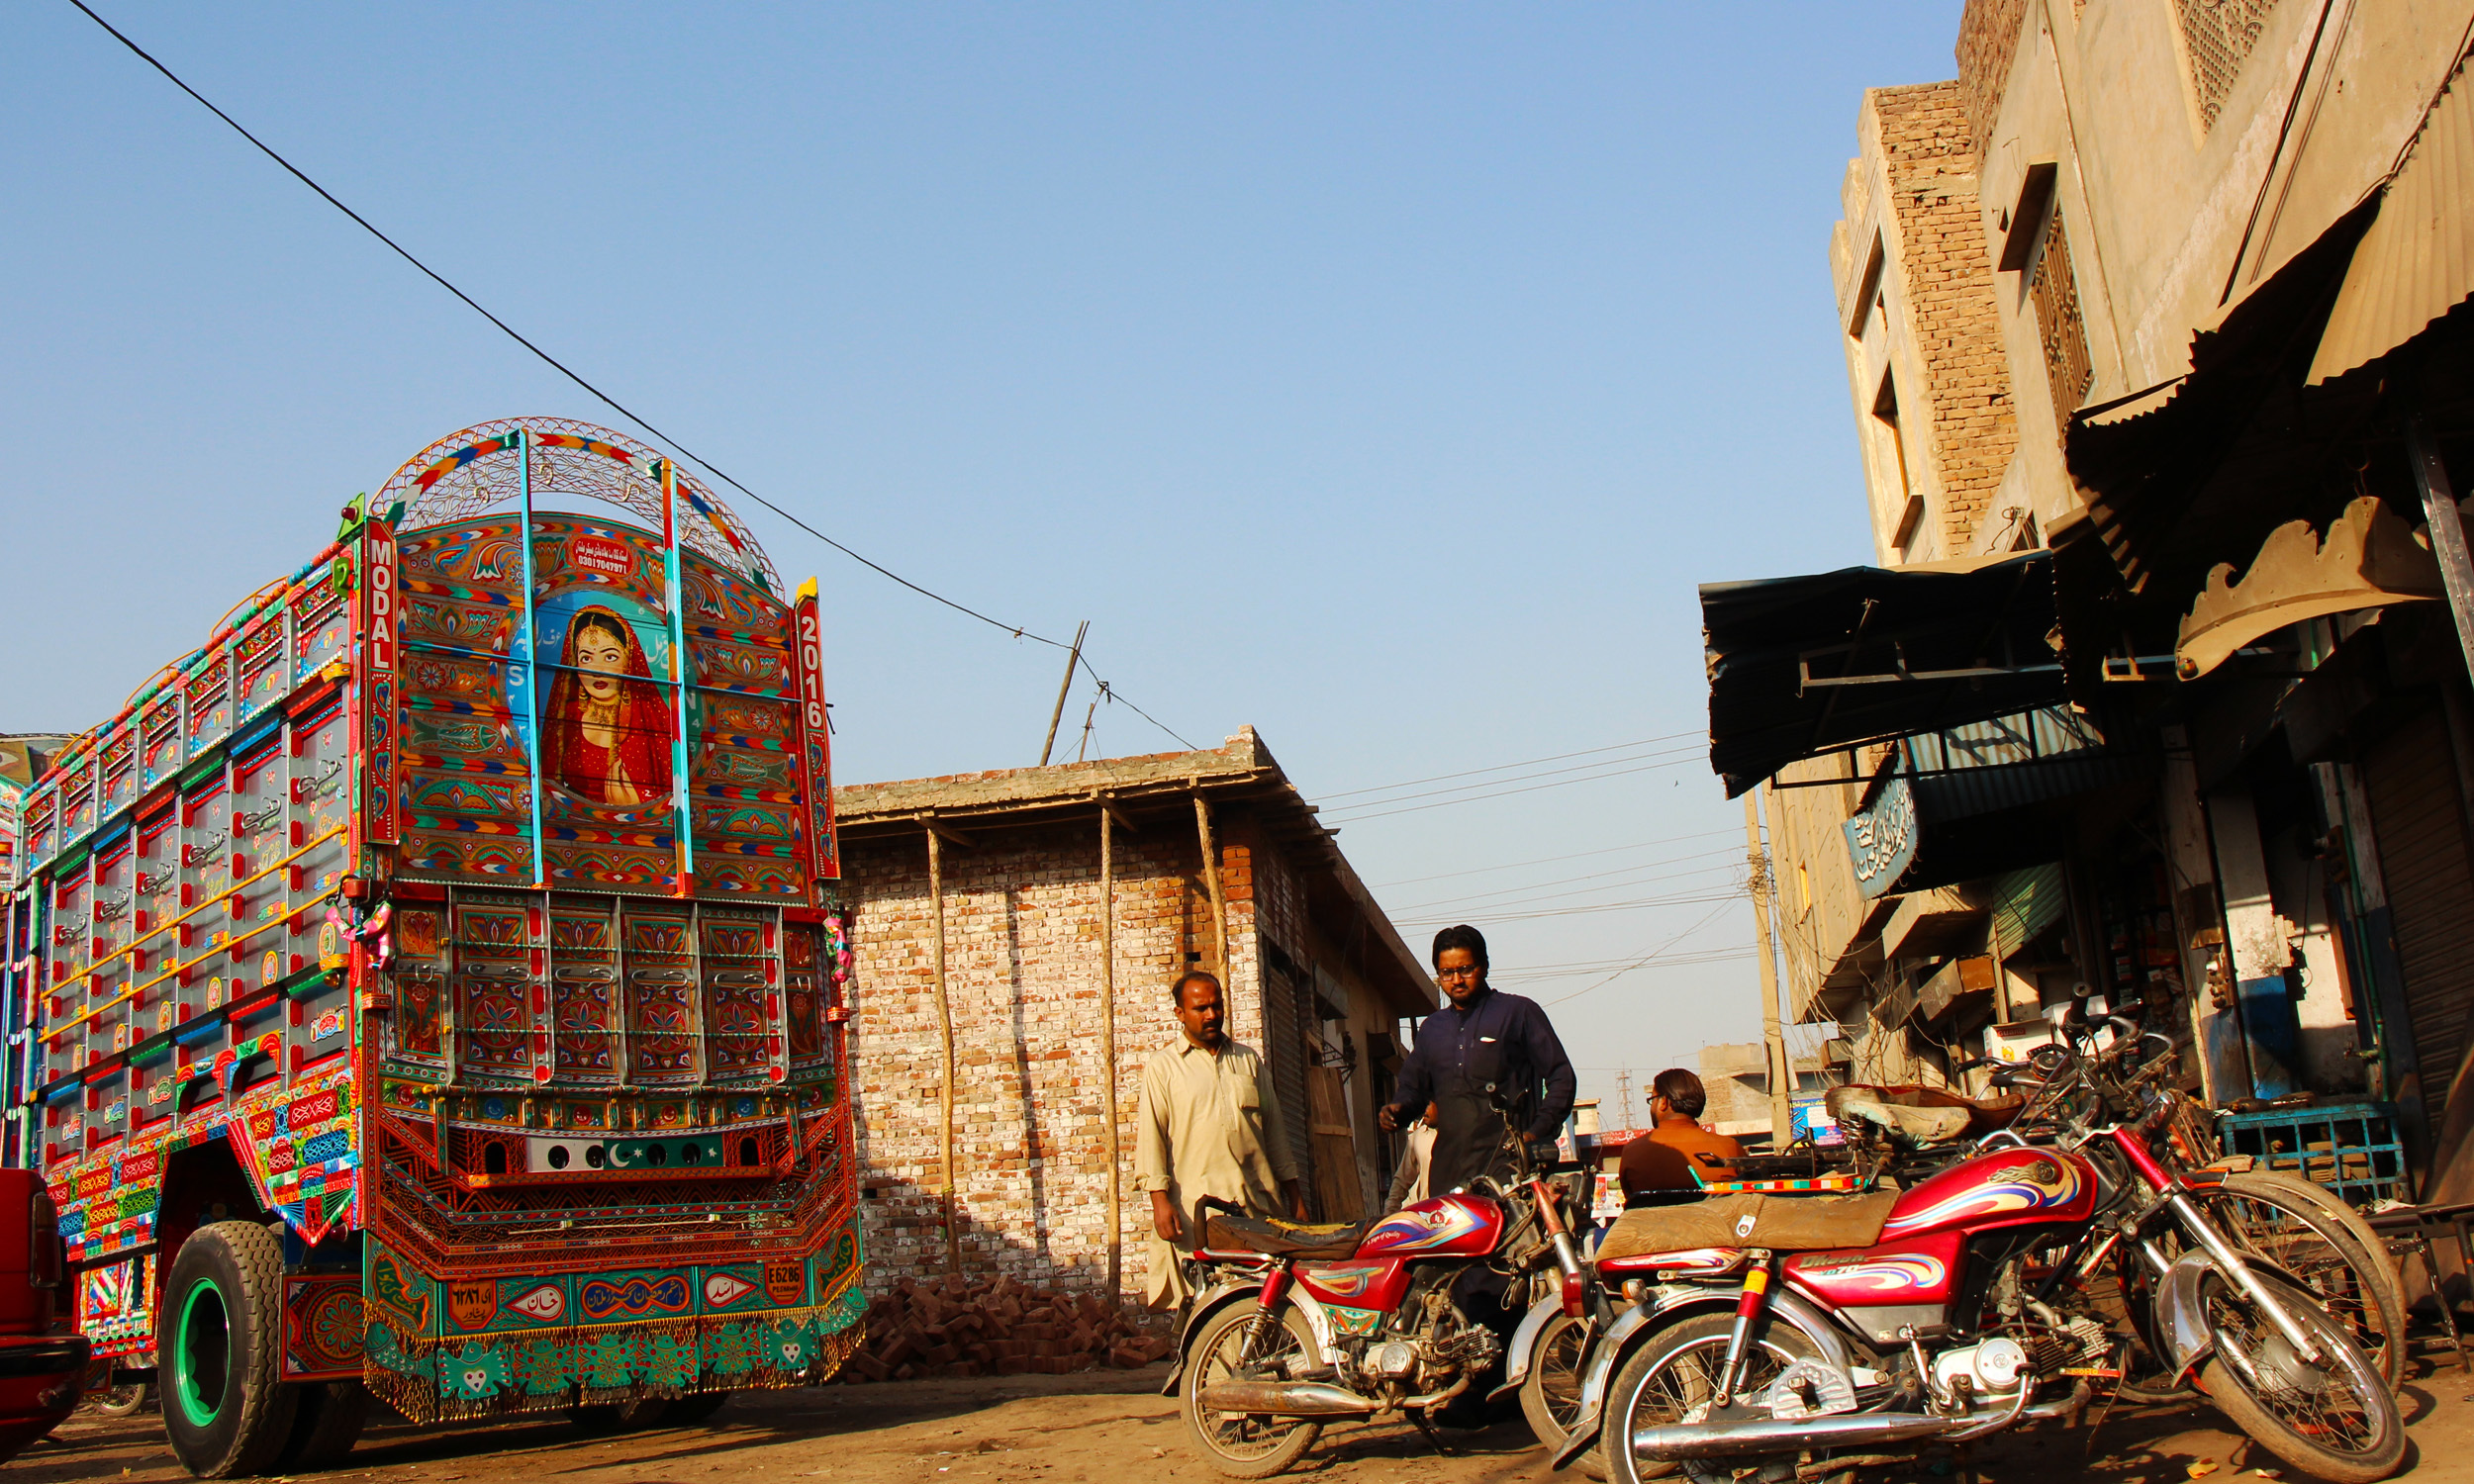 A freshly painted truck at a stand in Multan